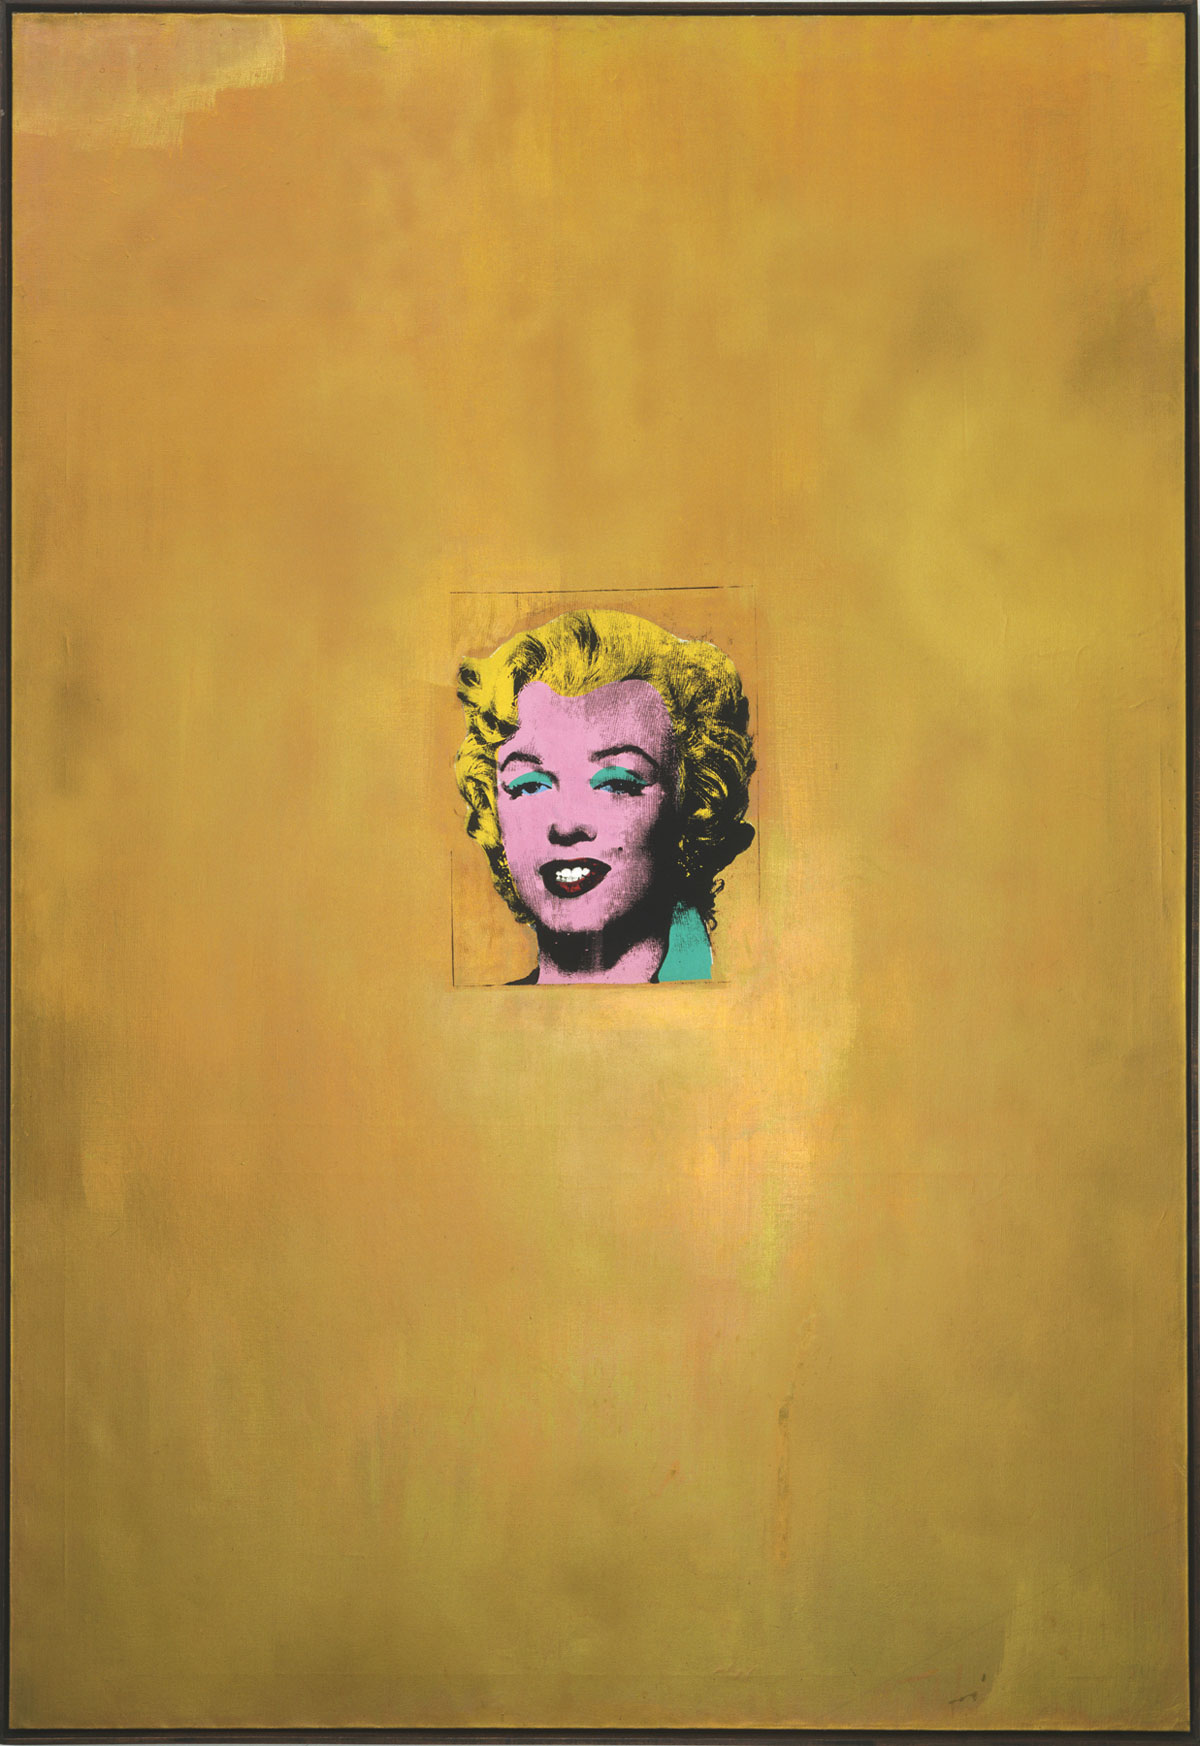 Andy Warhol, Gold Marilyn, silkscreen ink and metalic paint on canvas, 1962